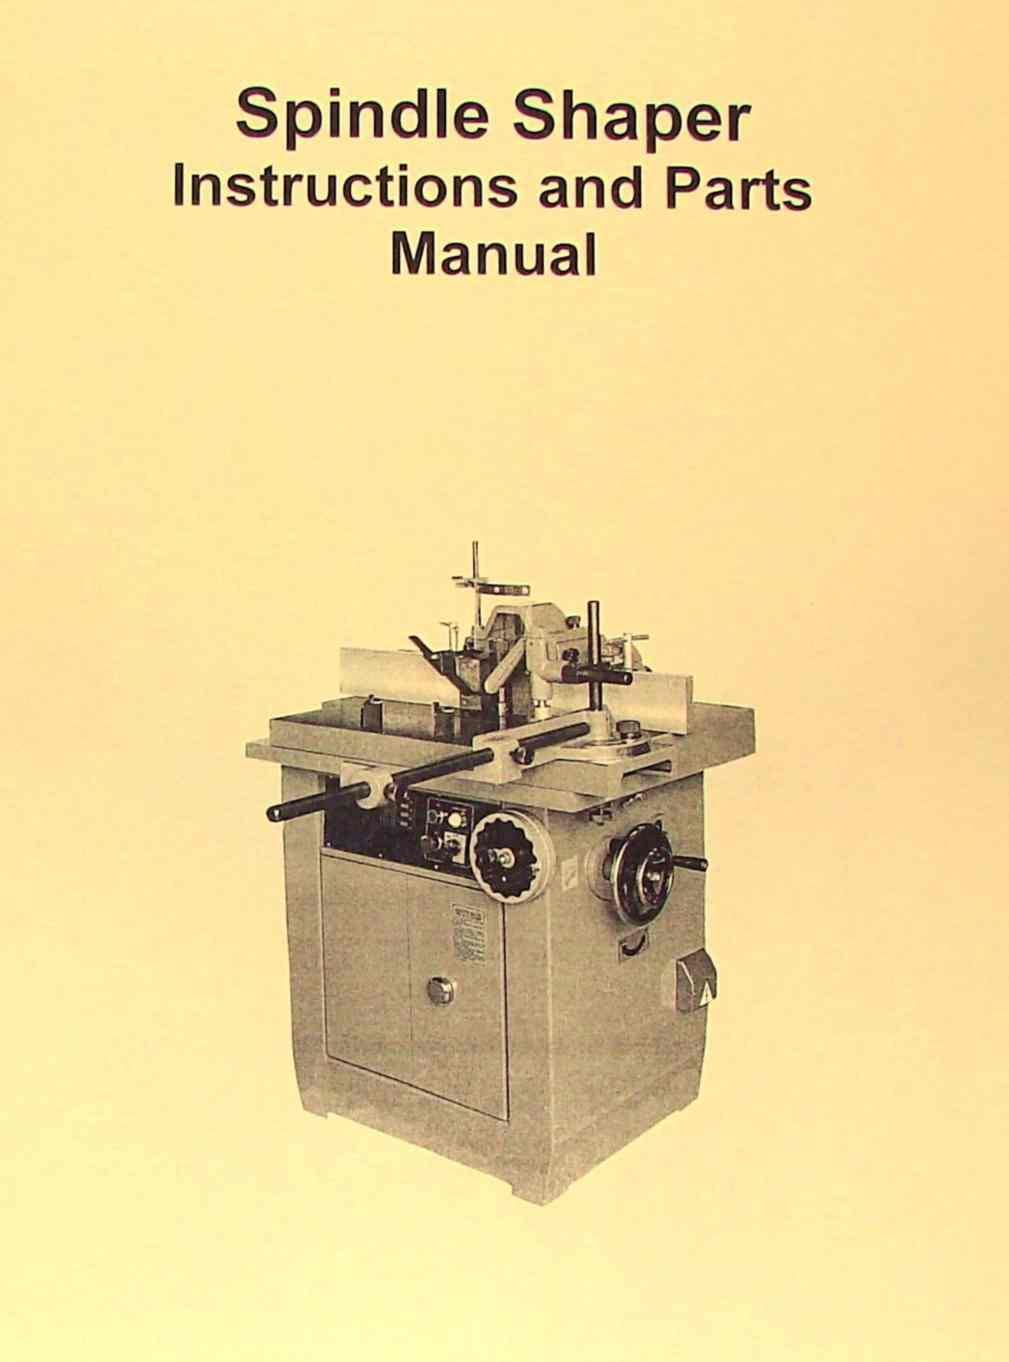 jet-asian ss-511 ss-512 large wood spindle shaper operator's & parts manual